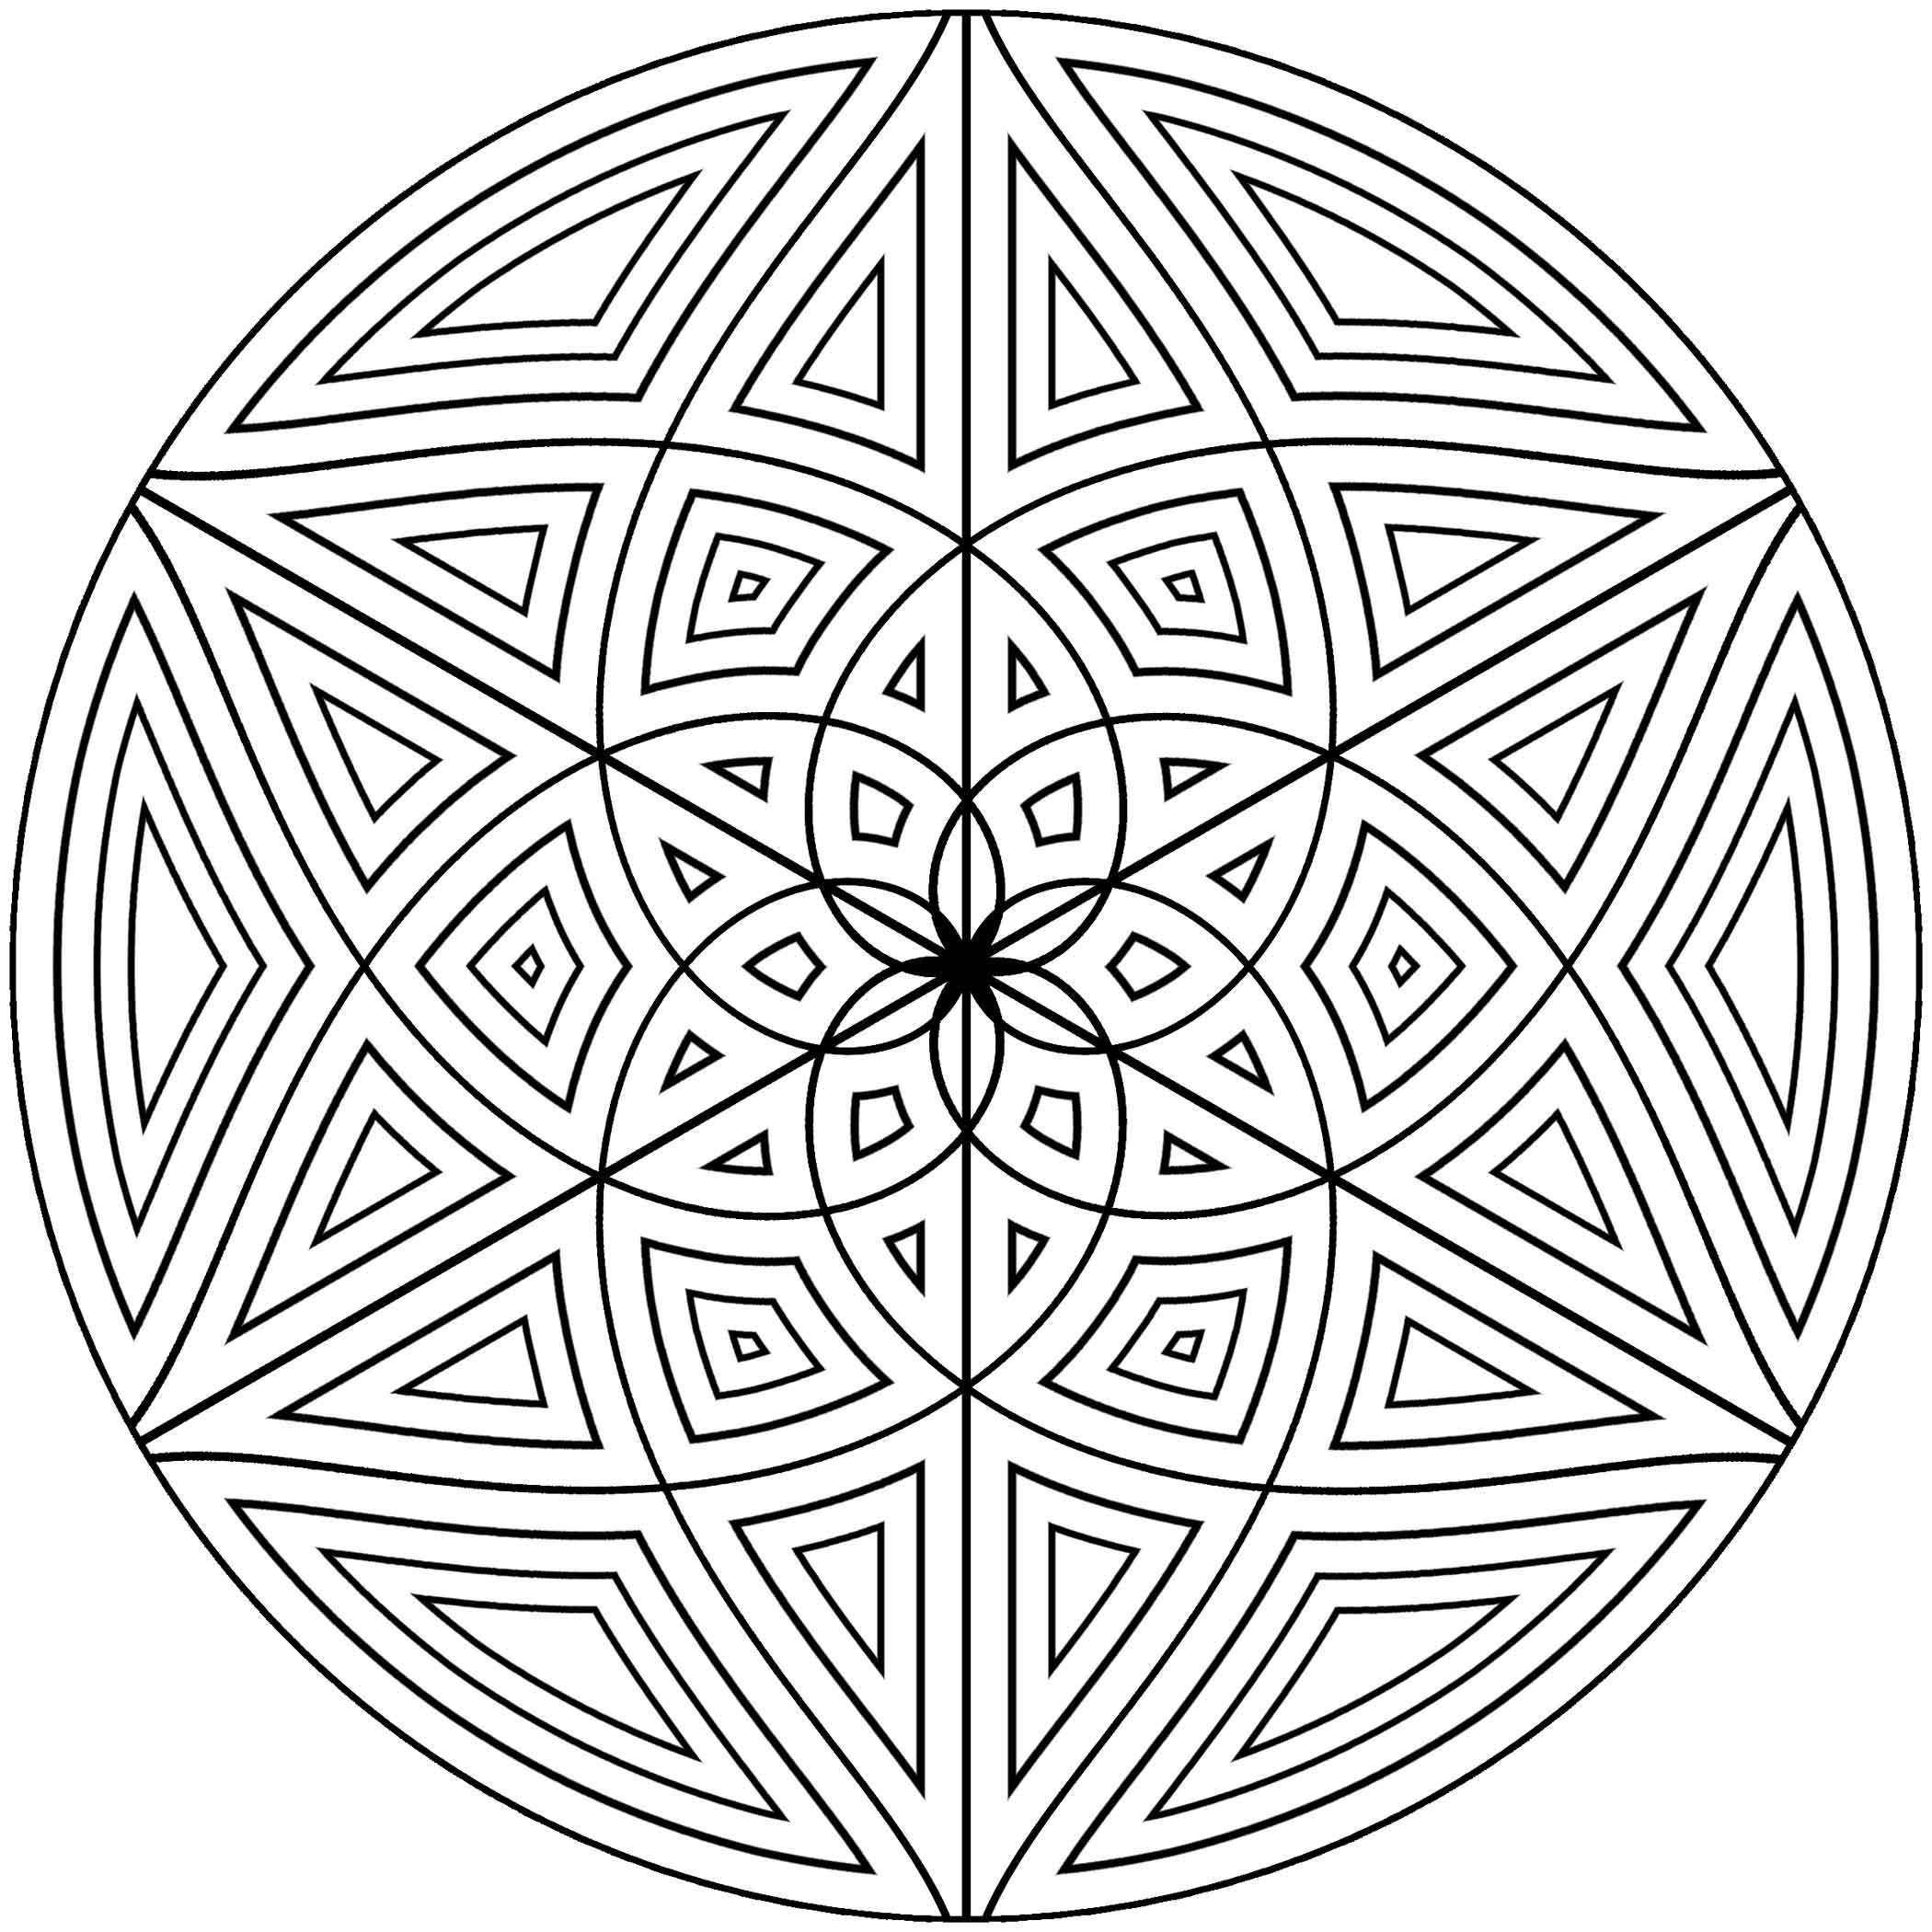 Comprehensive image for printable geometric coloring pages